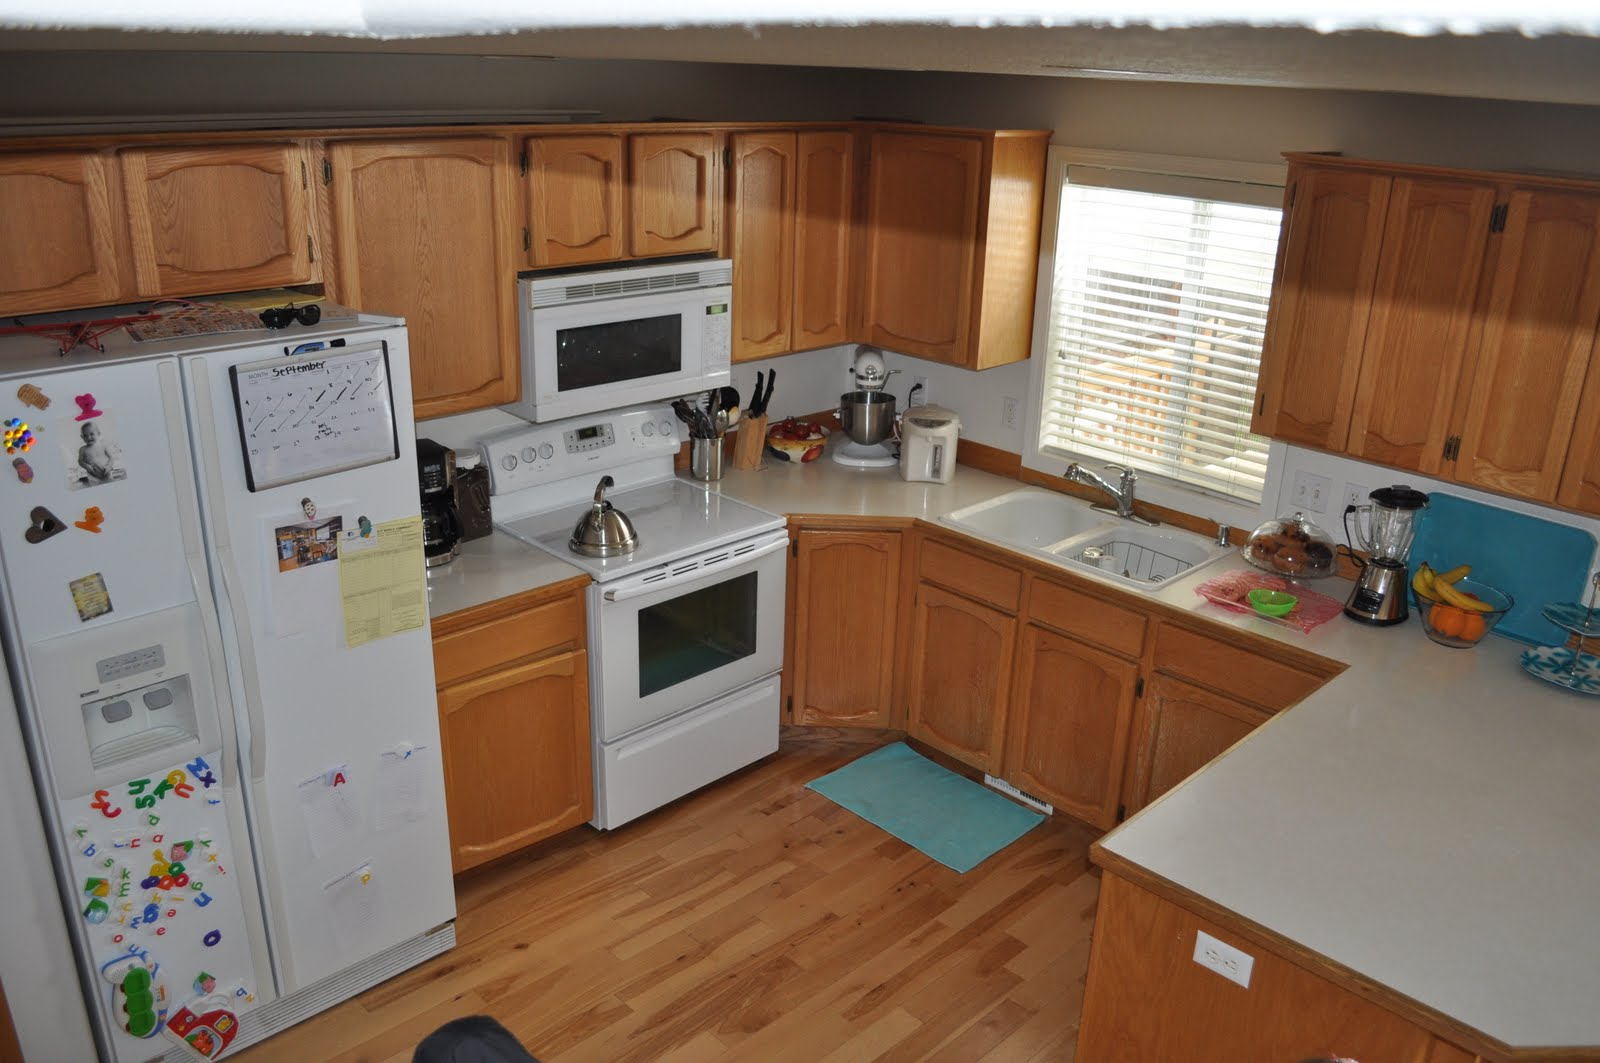 Suburbs Mama: kitchen remodel in the works